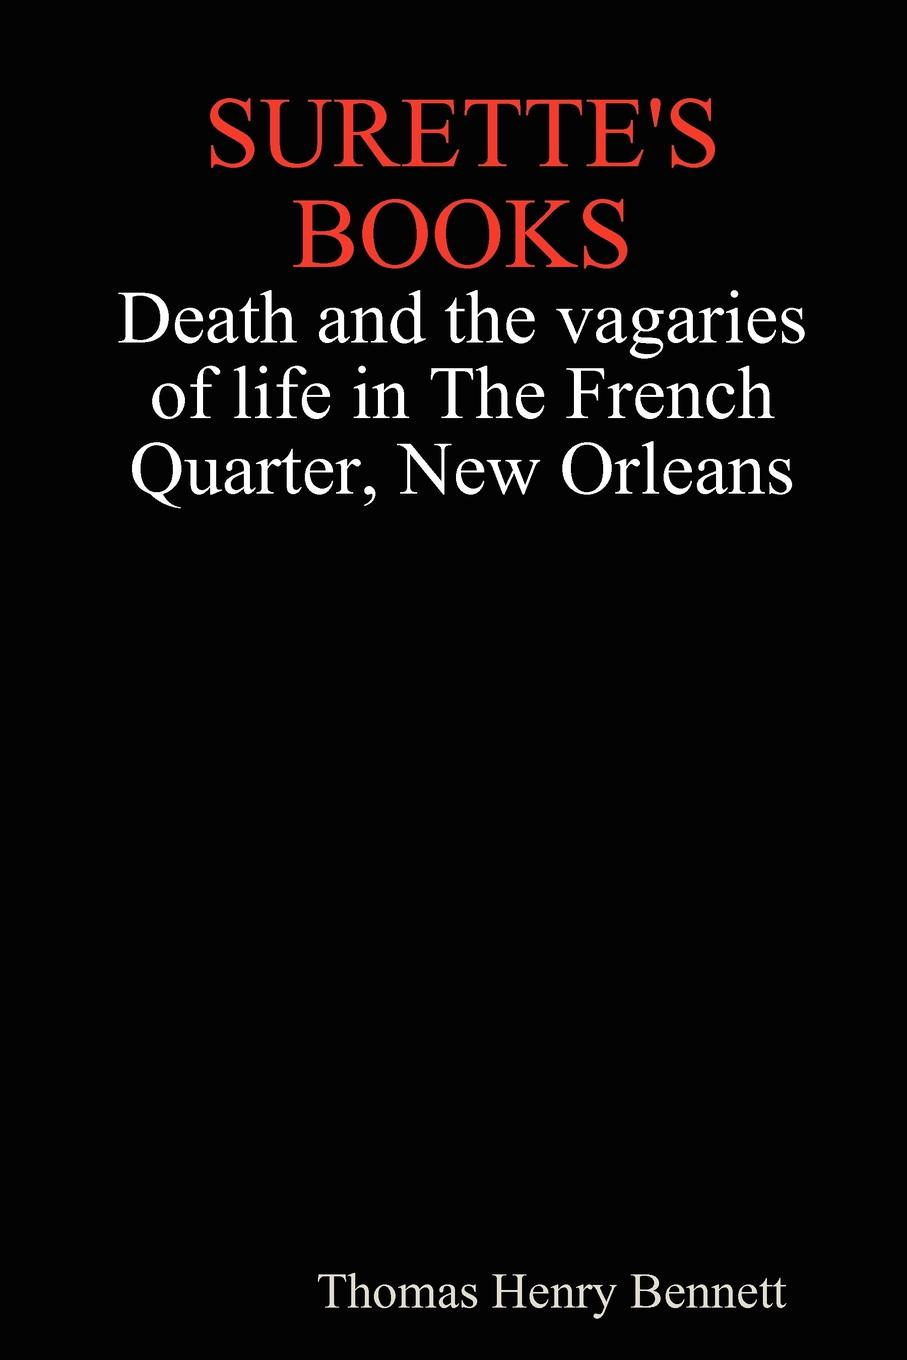 купить Thomas Henry Bennett Surette.s Books Death and the Vagaries of Life in the French Quarter, New Orleans онлайн